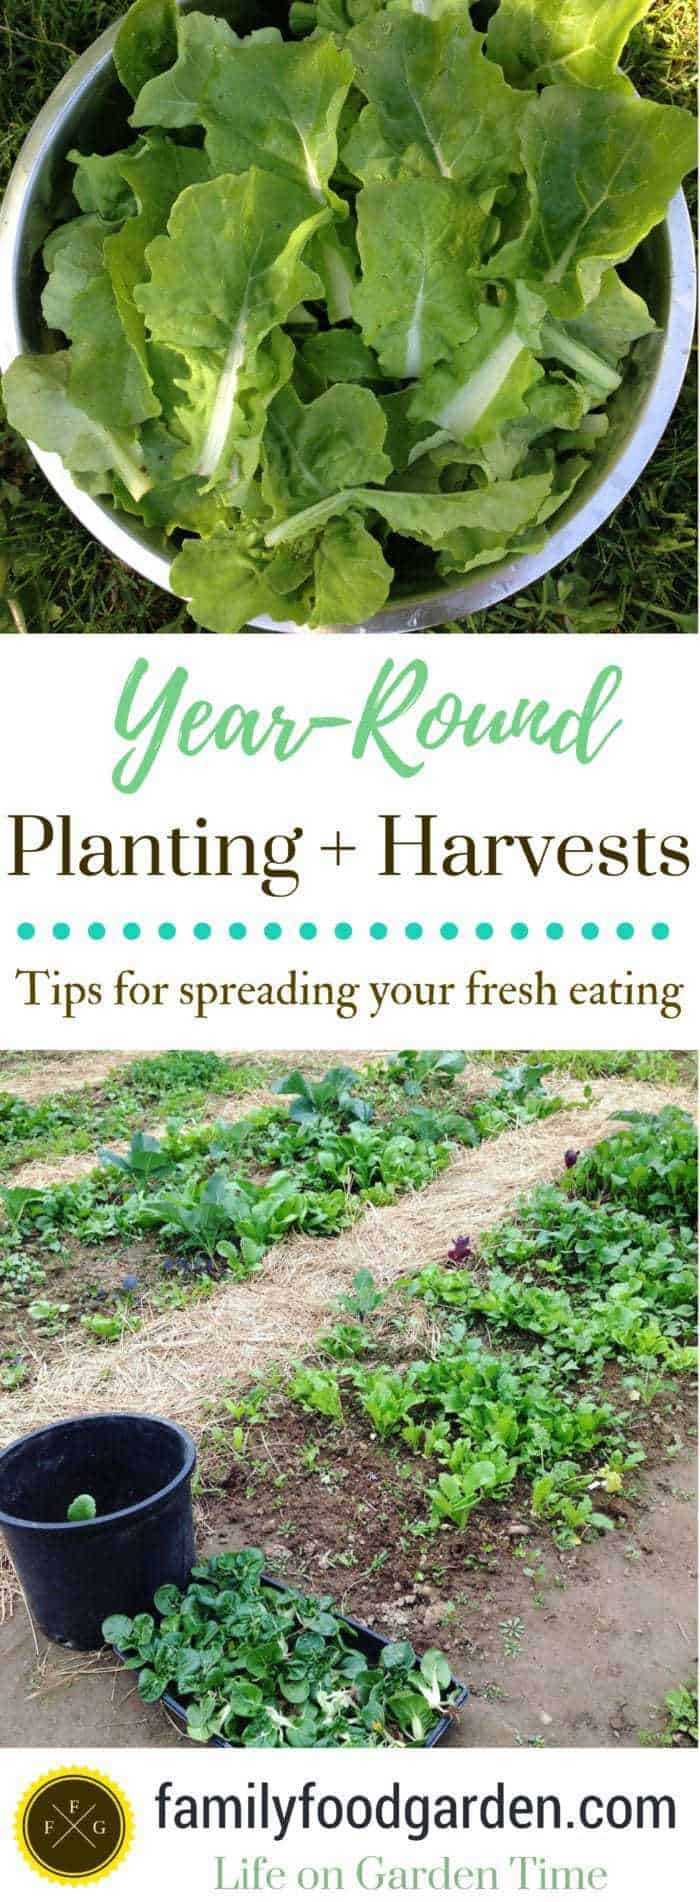 Year-round planting and harvesting